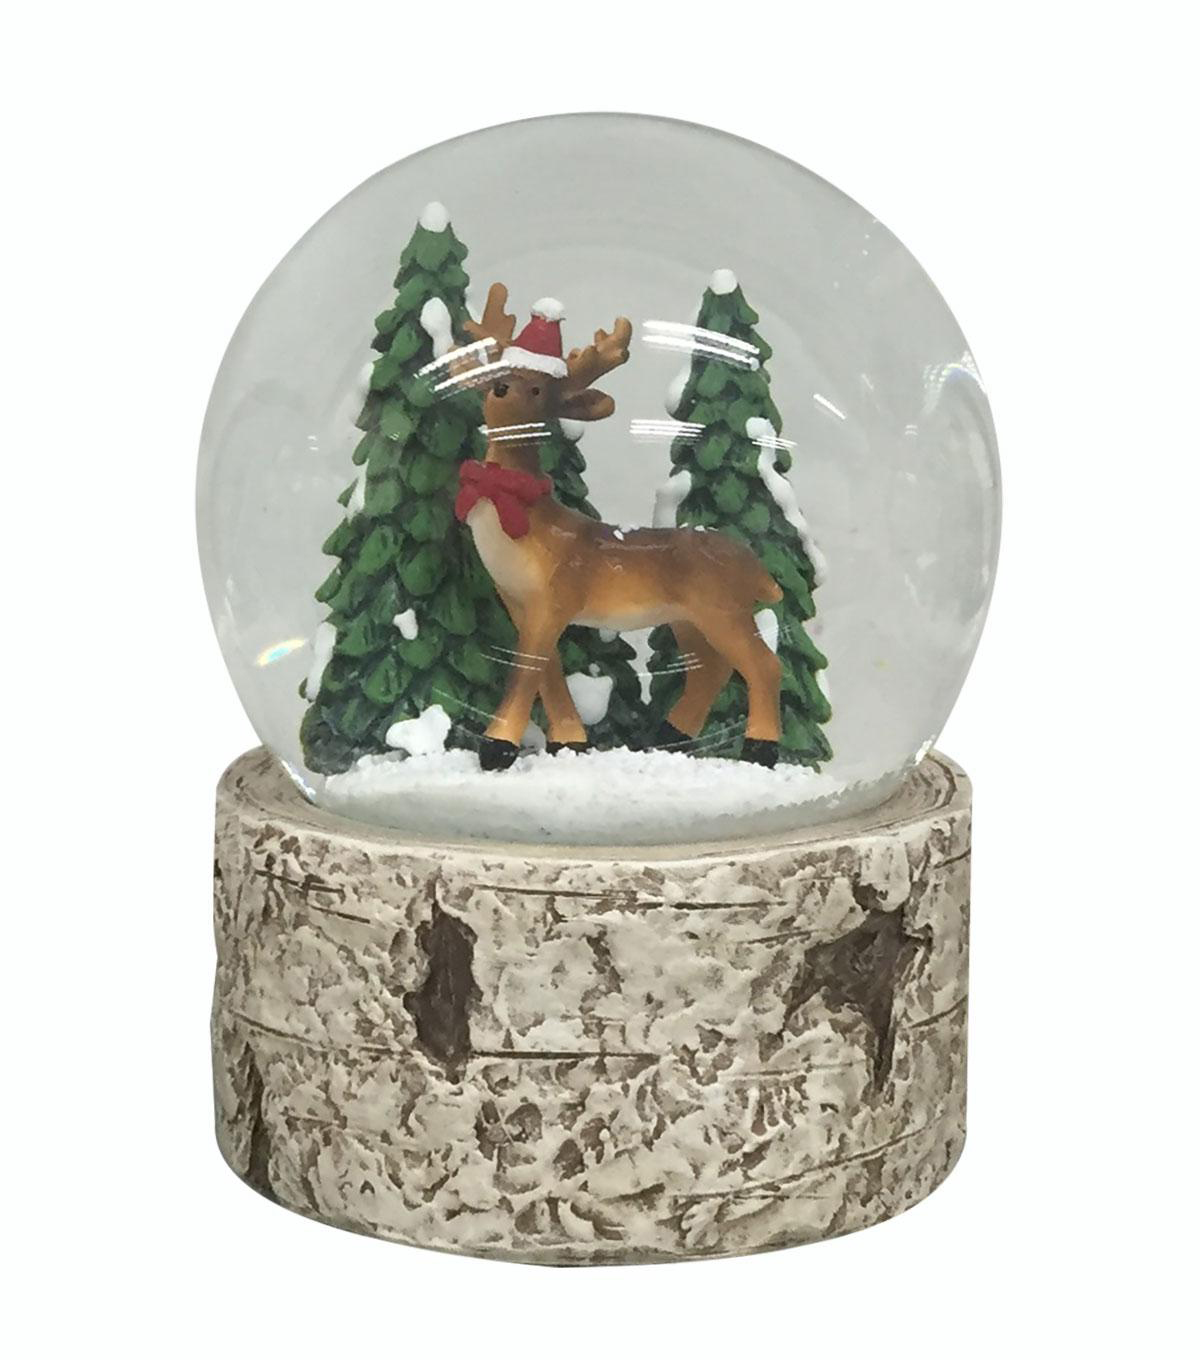 Handmade Holiday Whimsical Reindeer in Water Globe Tabletop Decor